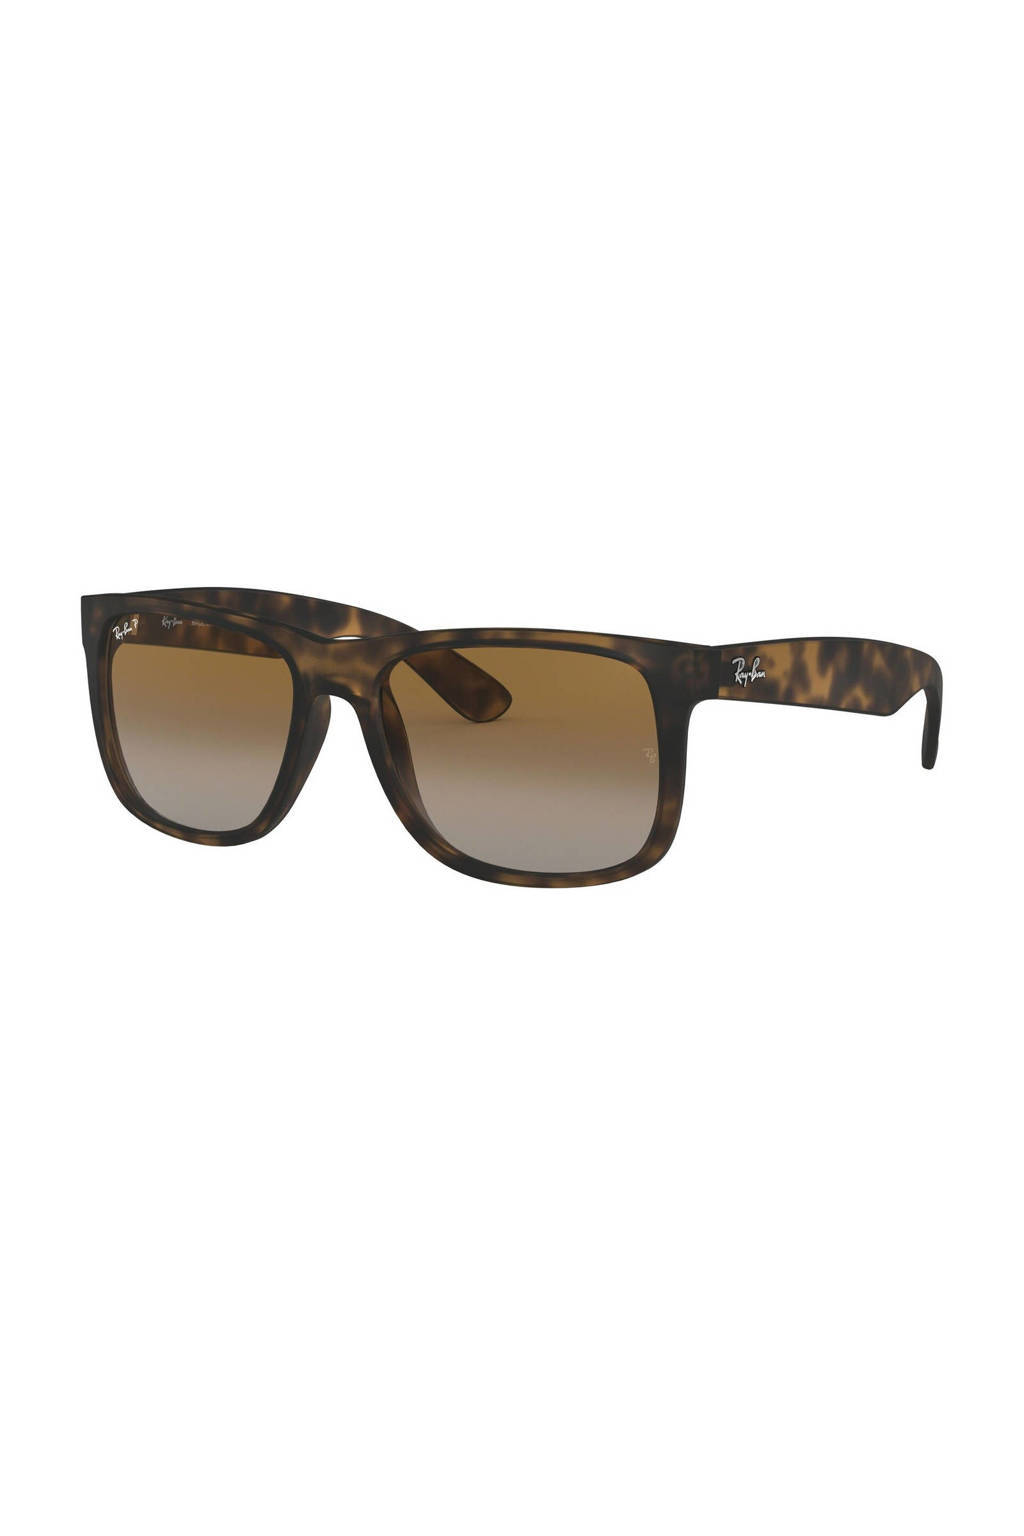 Ray-Ban zonnebril 0RB4165, Bruin